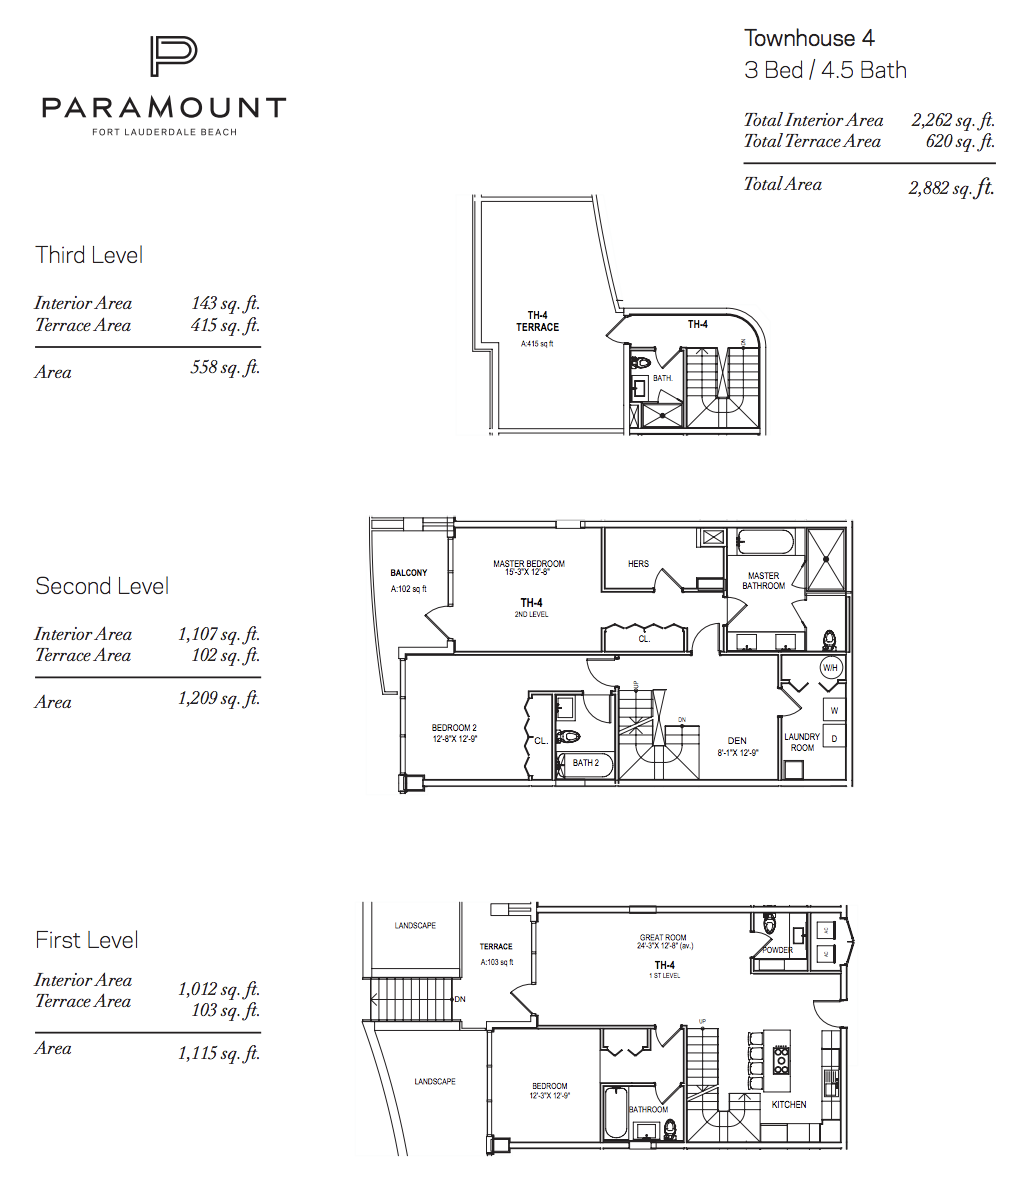 Paramount Residences Fort lauderdale Townhouse 4 | 3 Beds - 4.5 Baths